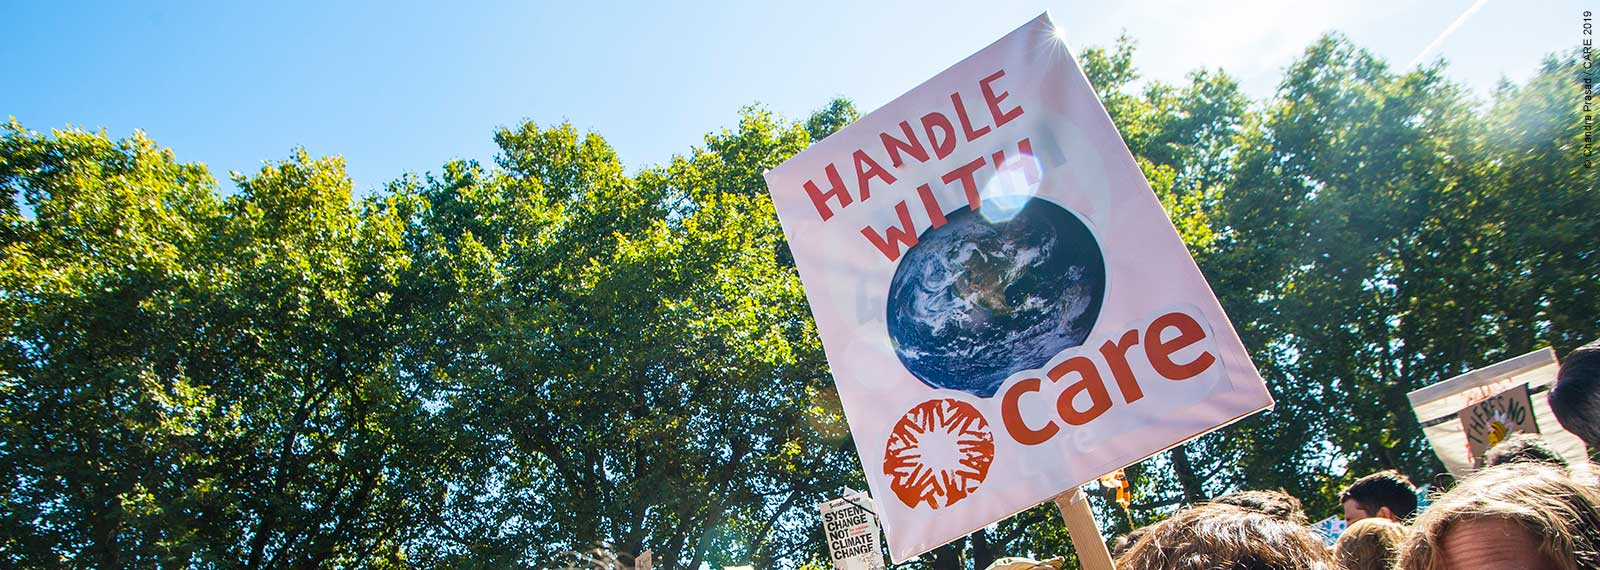 Handle with CARE placard at climate action protest